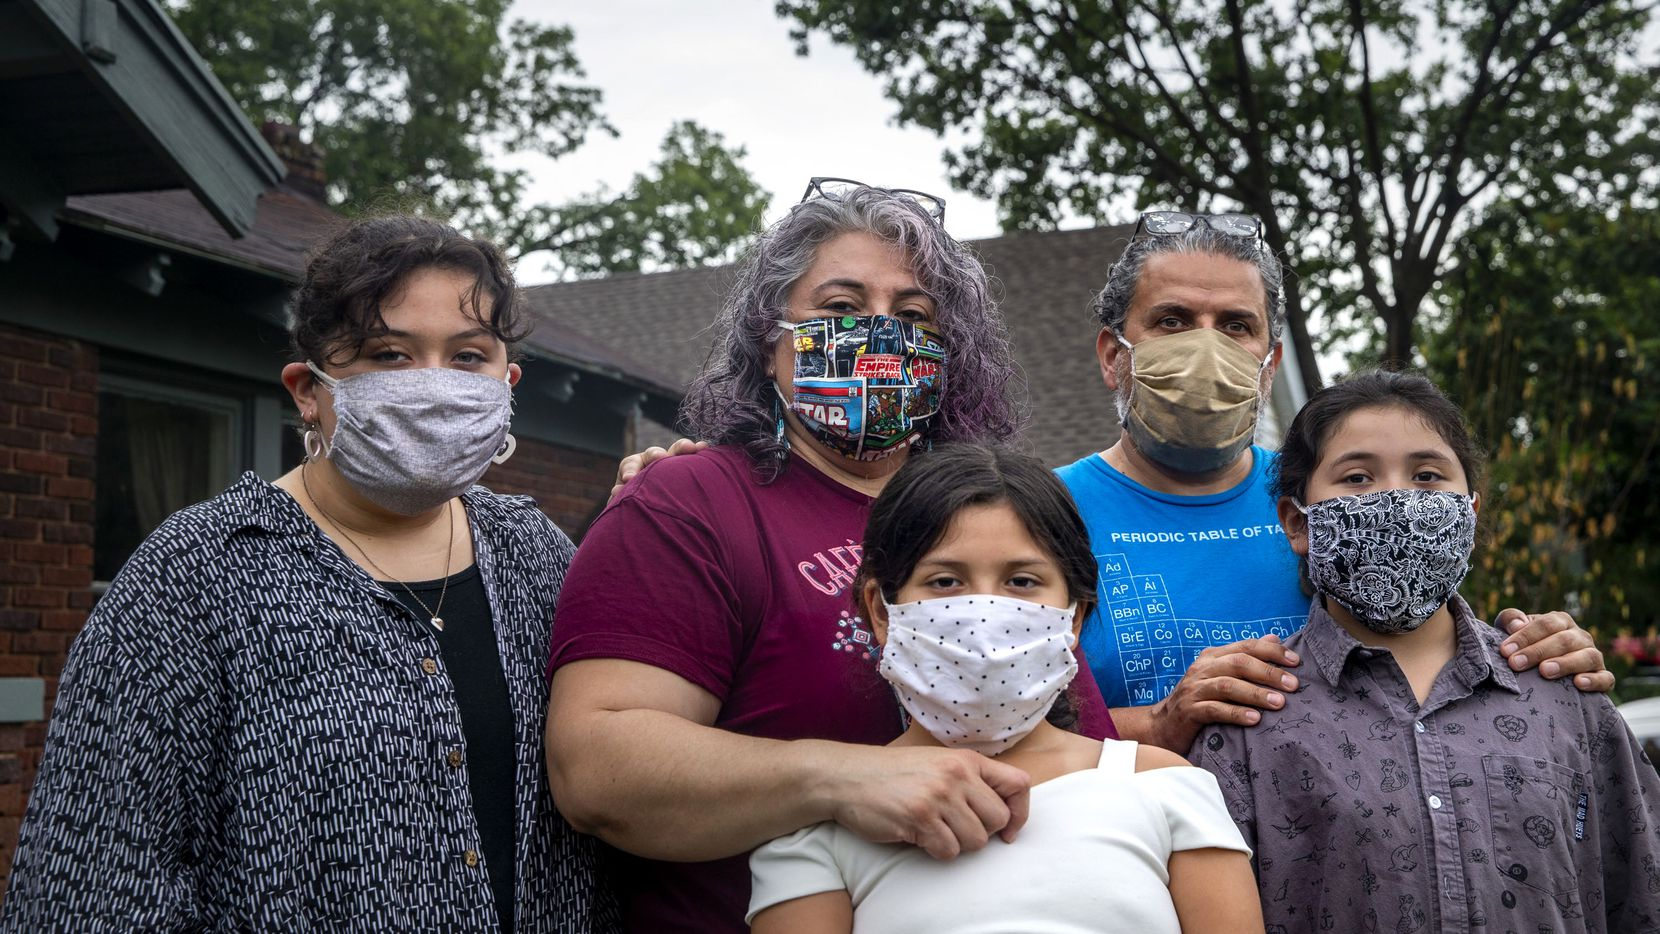 Ofelia Faz-Garza (center) and her husband Hector Garza (second from right) pose for a portrait with their daughters — from left, Meztli, 15, Paloma, 8, and Lila, 10 —outside their home in Oak Cliff on Tuesday, June 23, 2020.